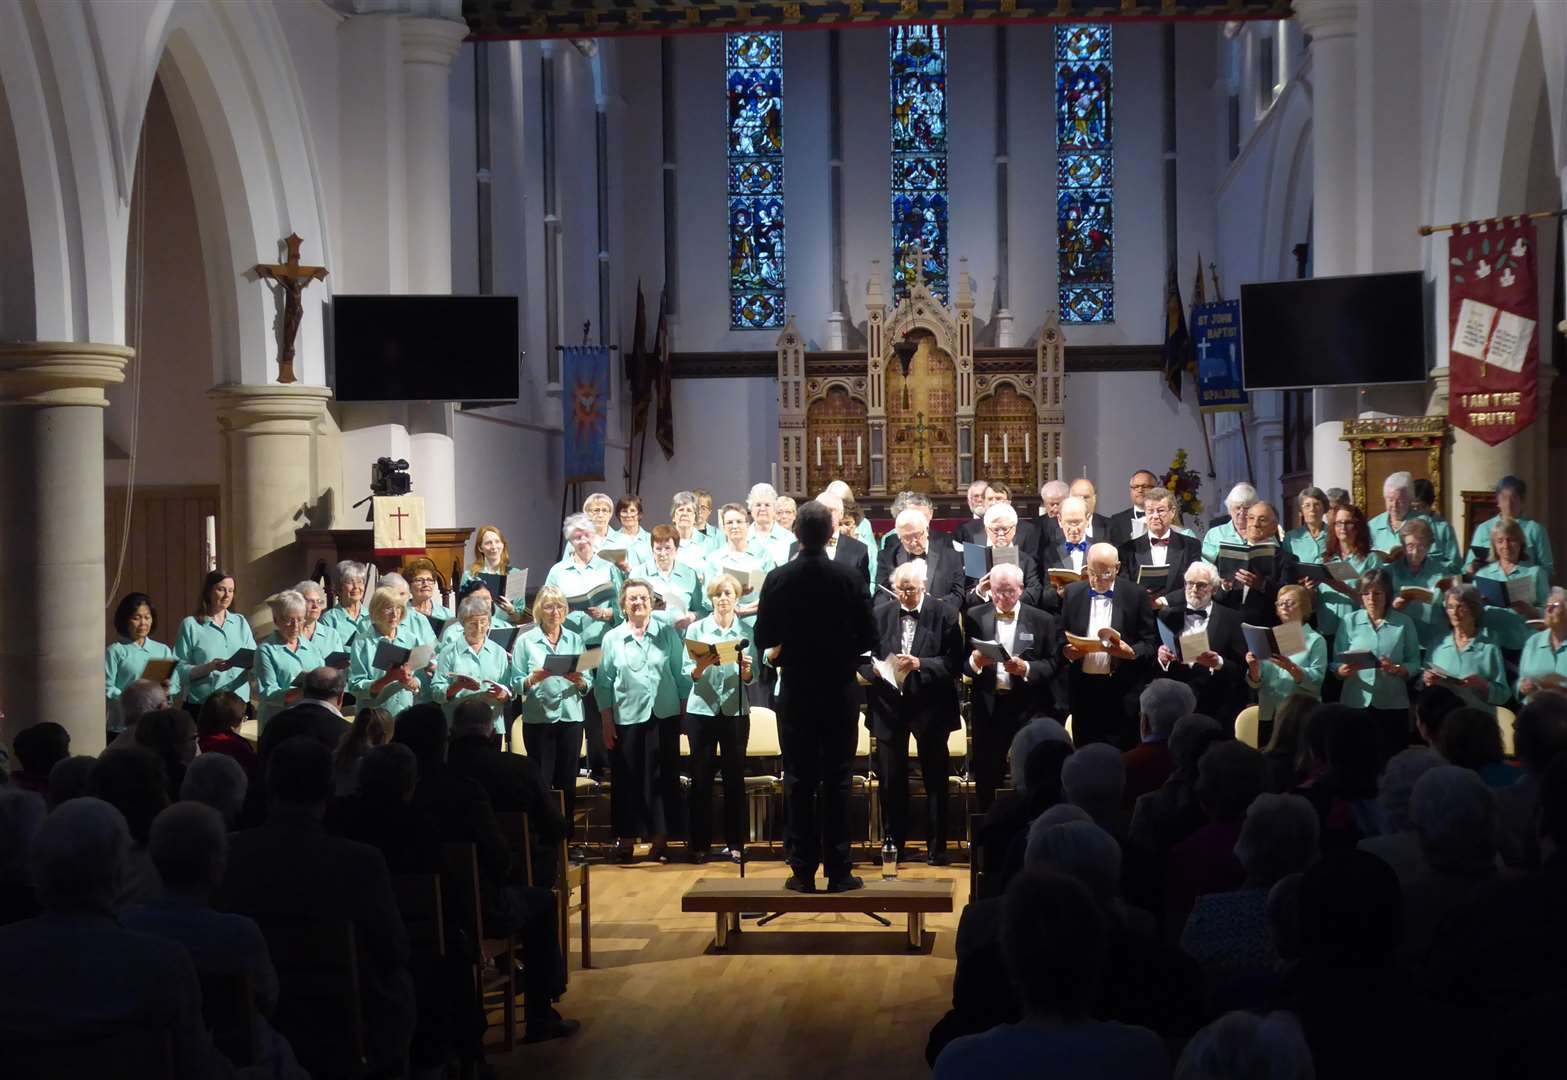 New choir leader at helm for South Holland Singers' concert in Spalding